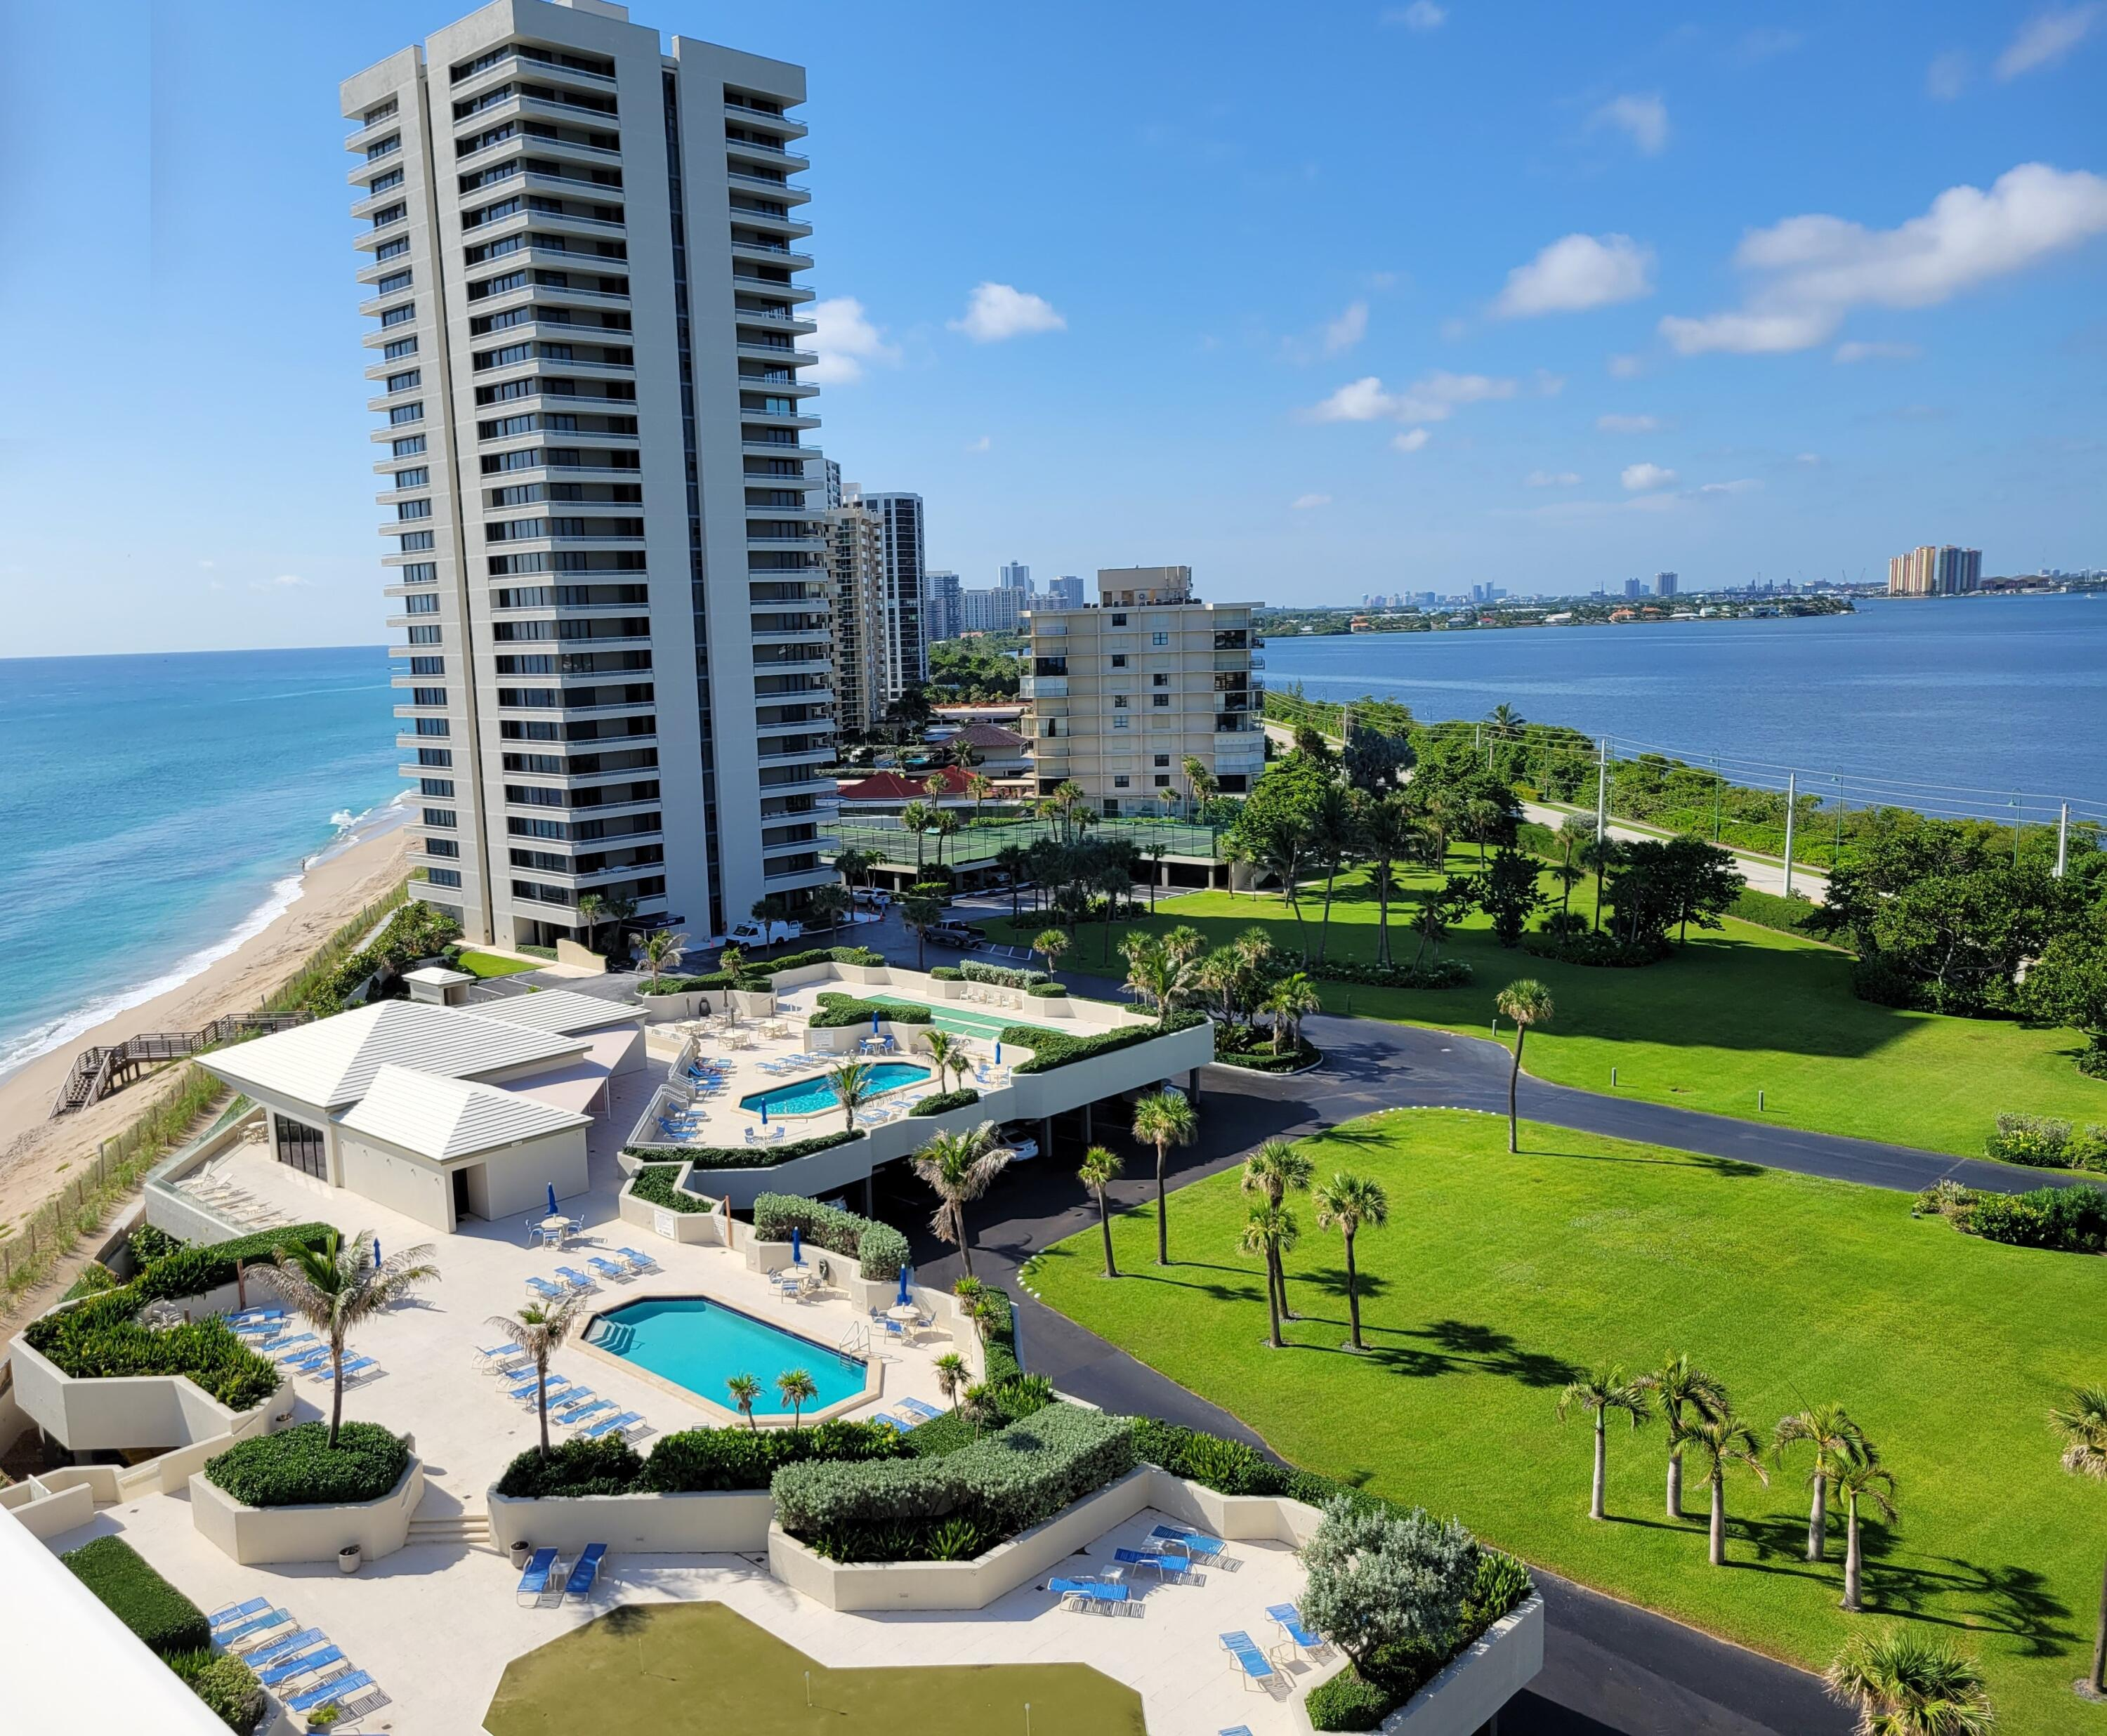 This Water Glades unit is in the desirable B column of the building providing a SE exposure from wrap-around balconies with beautiful views of the ocean and Intracoastal. Enjoy the ocean and intracoastal during the day and the night lights of the city in the evening. The unit has been completely remodeled.  The Kitchen has been opened up to allow you to enjoy all the views while entertaining and new cabinets, counters and appliances have been installed. The baths have been updated and floors have been updated. The building is close to The Gardens Mall and PGA Blvd with shopping and restaurants at Oakbrook Square. You can't beat the location, only 15 minutes from downtown West Palm Beach and the Airport.    Enjoy your own ocean beaches on the Island or go 20 minutes north to jupiter and Juno Beach.      In the real estate business when there is a property that has it all we call it a Creampuff.   This is a Creampuff!!